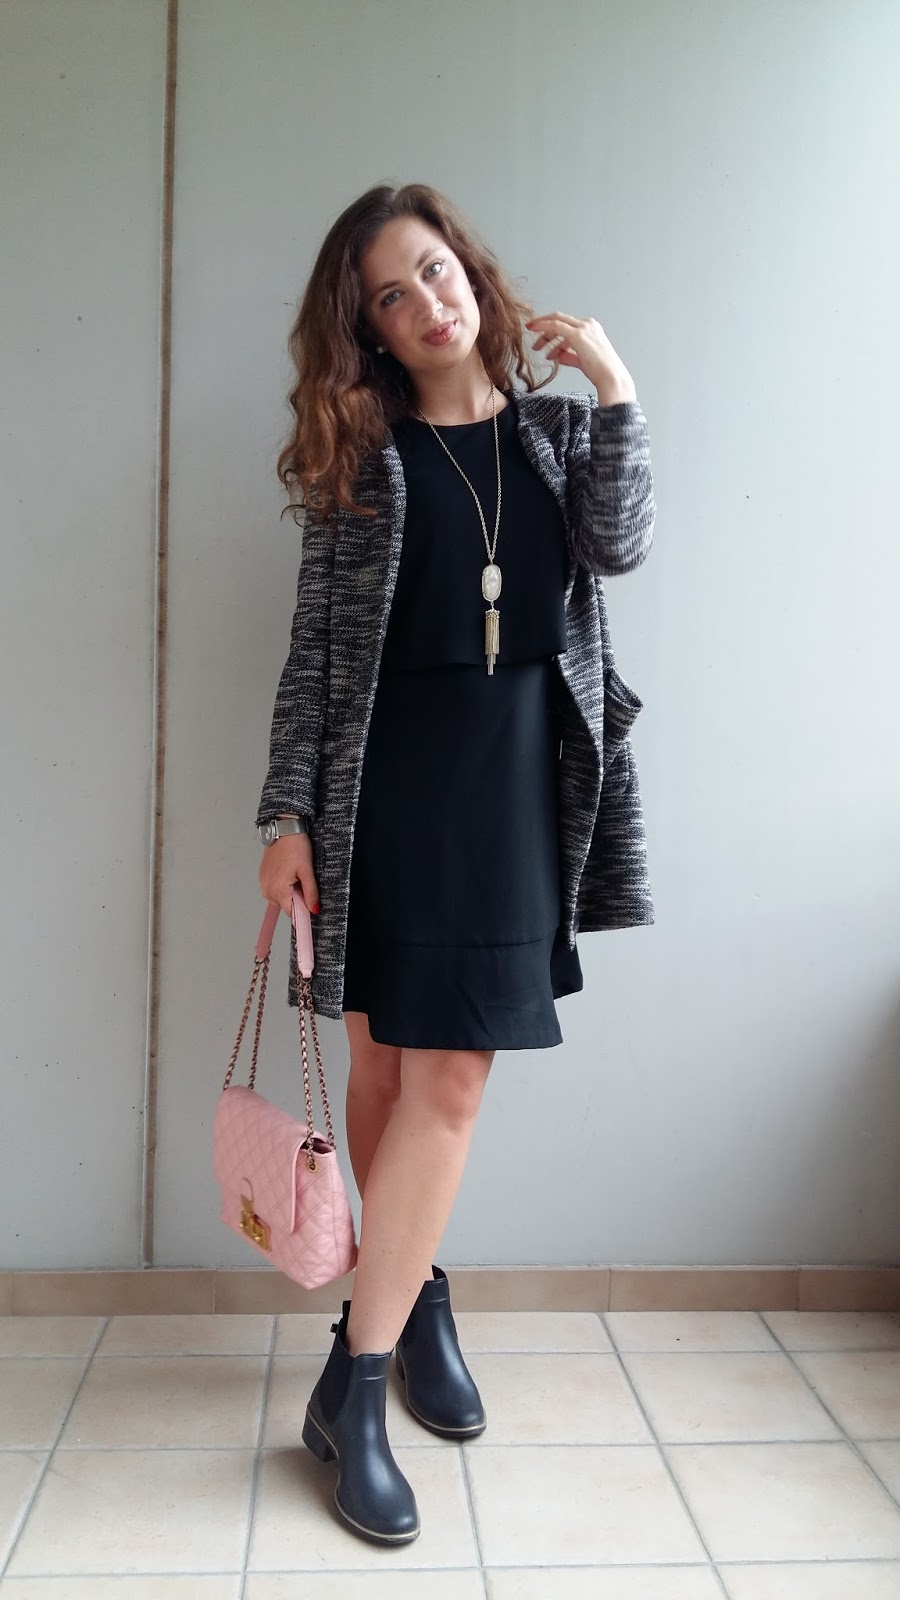 LBD, black dress, banana republic, marc jacobs, kate spade, fall fashion